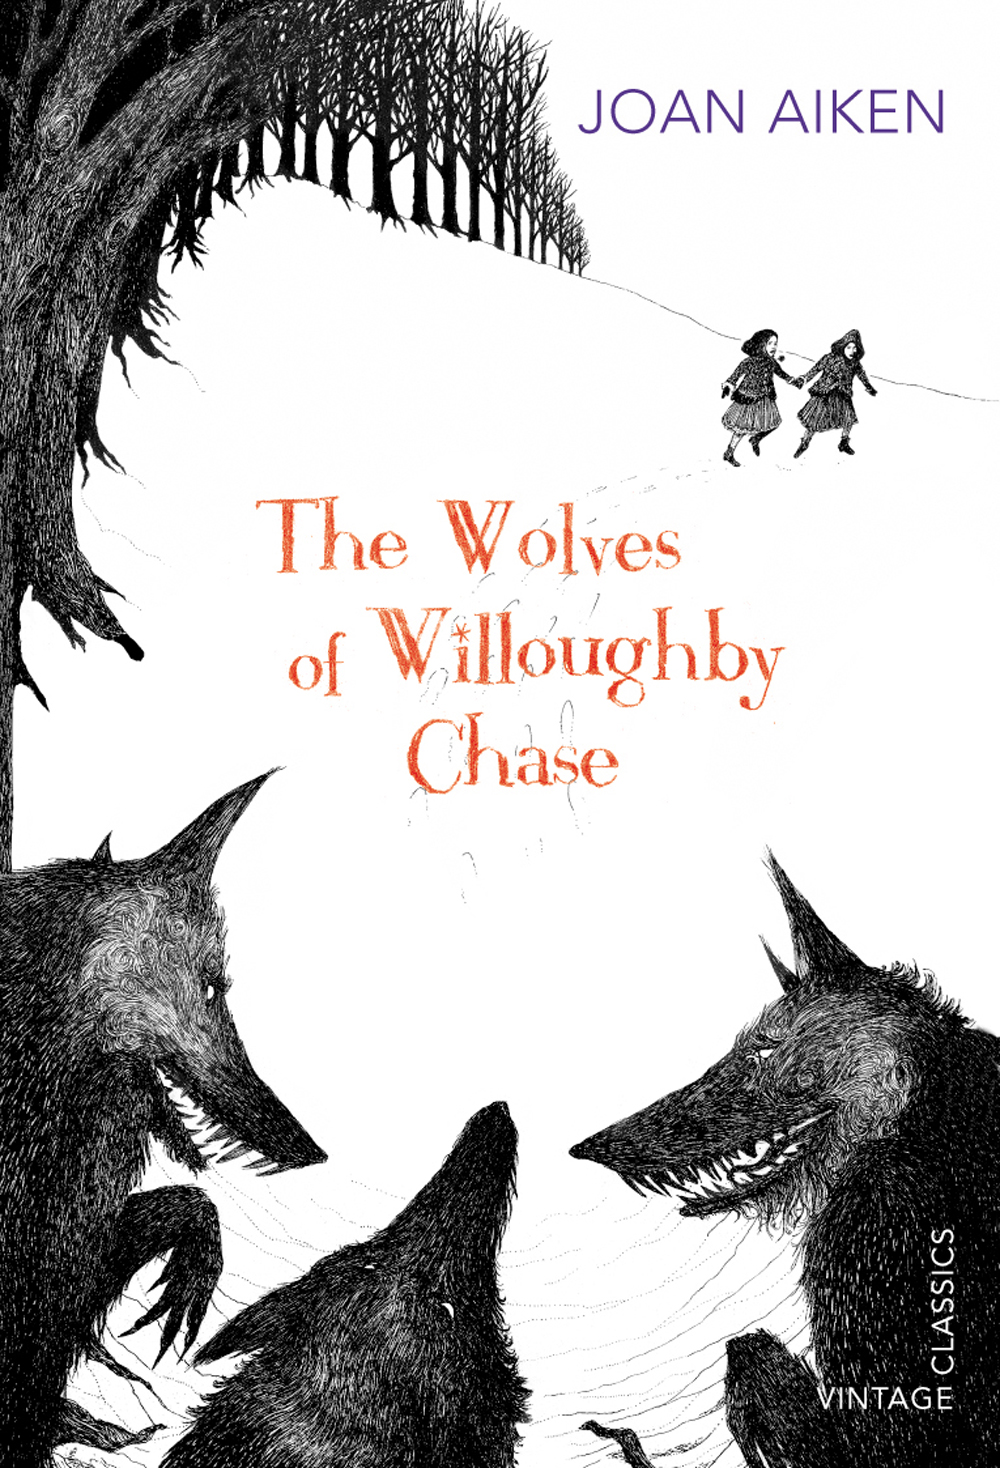 Book Review: The Wolves of Willoughby Chase by Joan Aiken